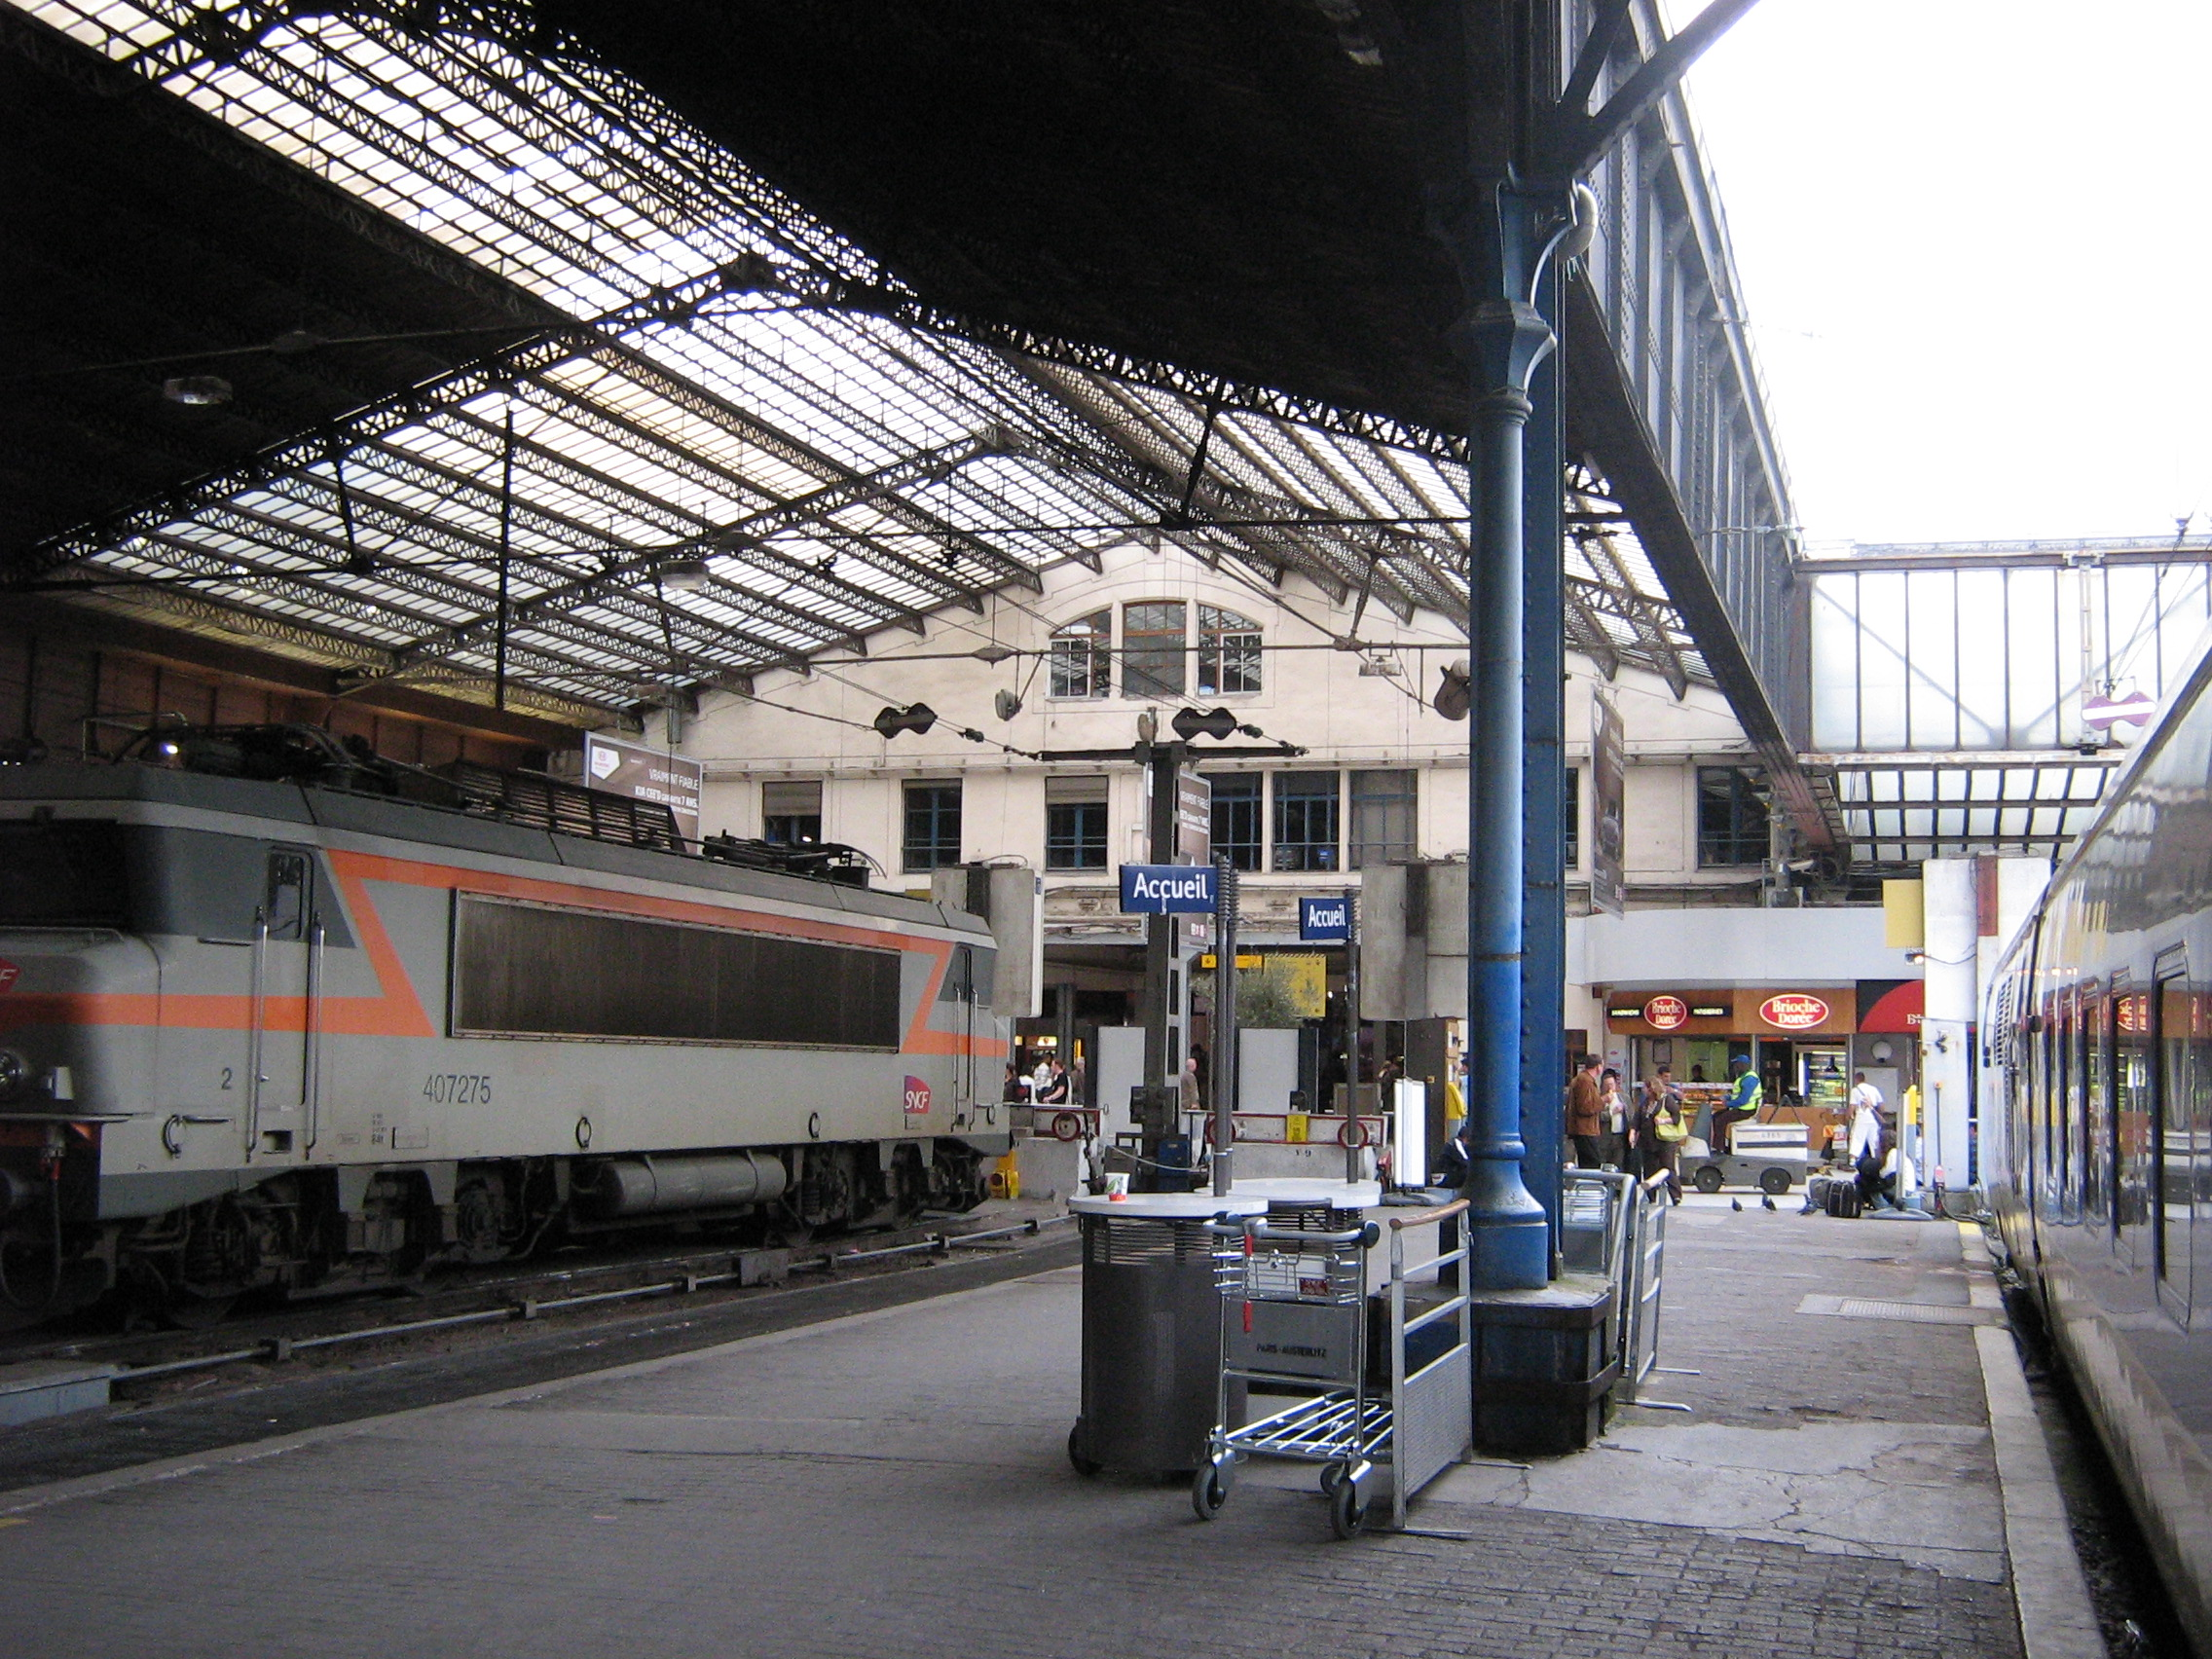 paris-train-station